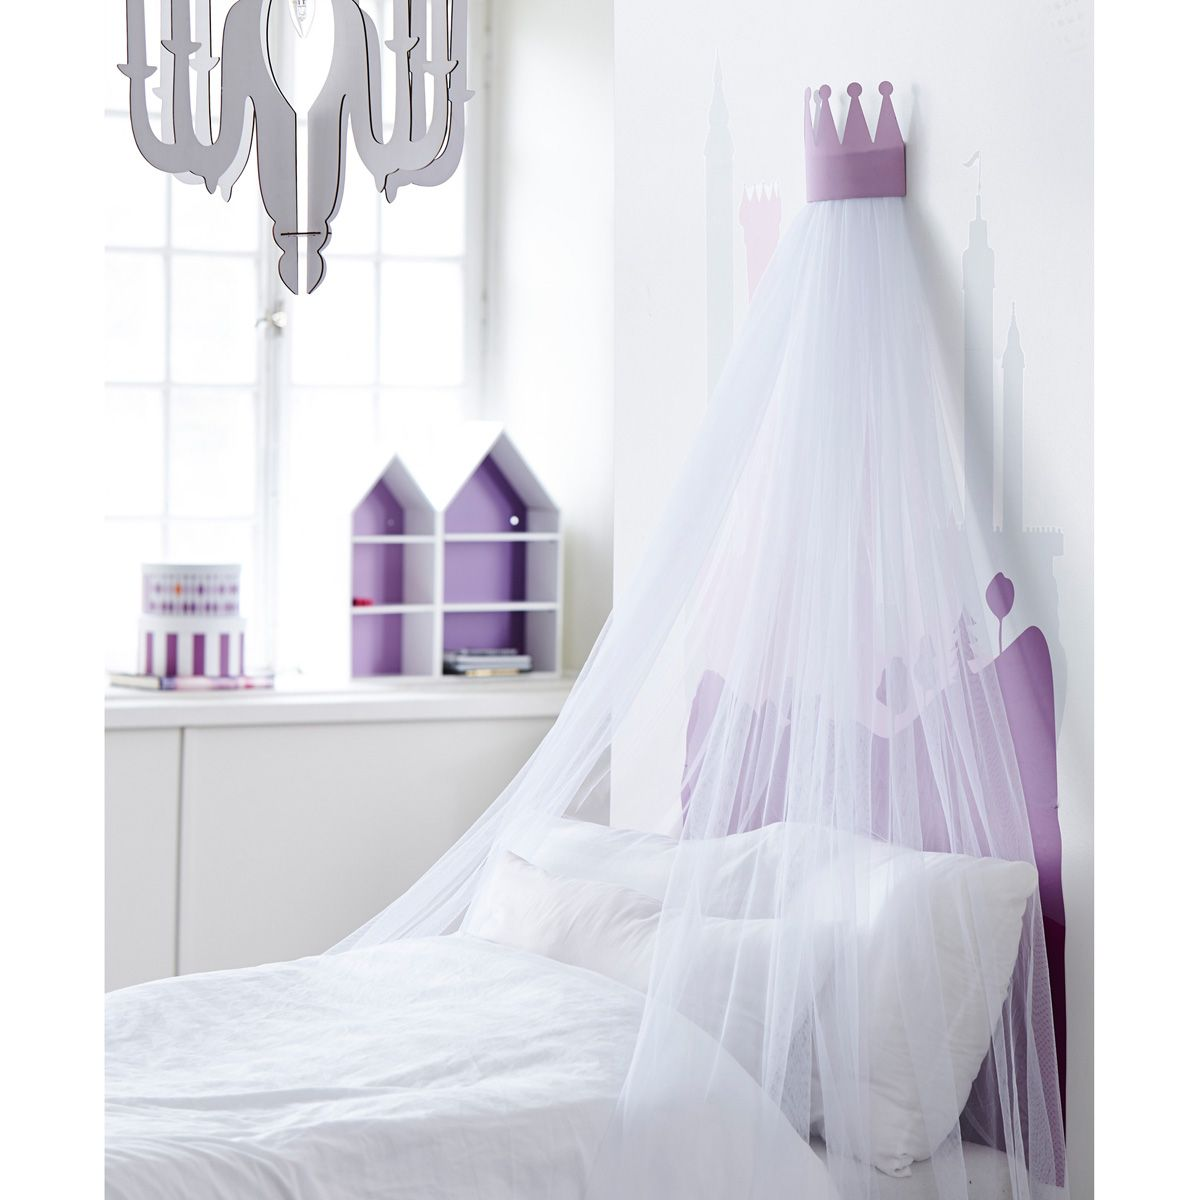 Betthimmel Kinderbett Betthimmel Fairy Von Kids Concept Kaufen Bei Little Roomers